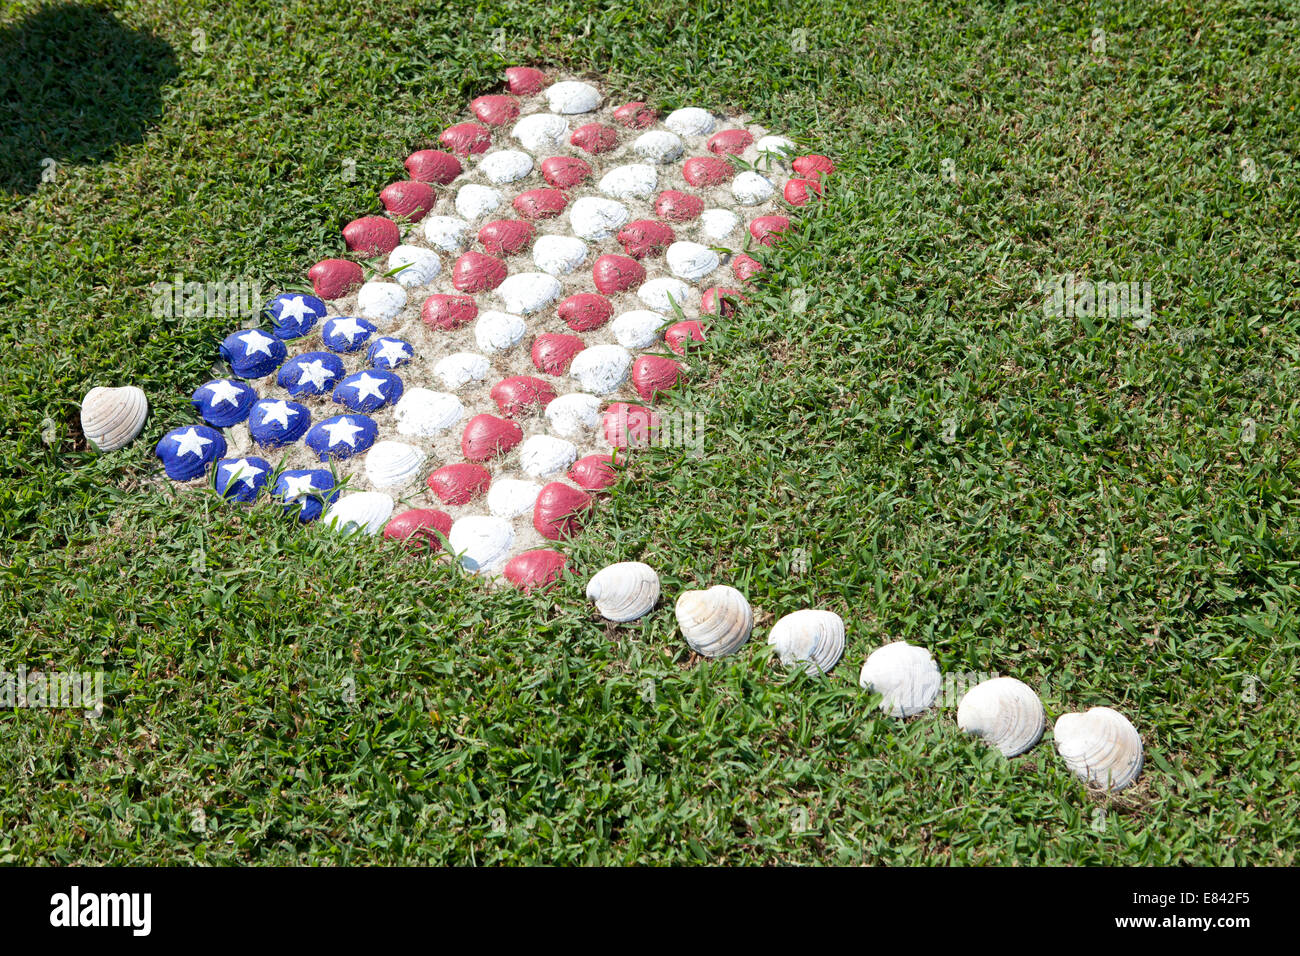 Garden lawn with American Flag made out of seashells - Stock Image